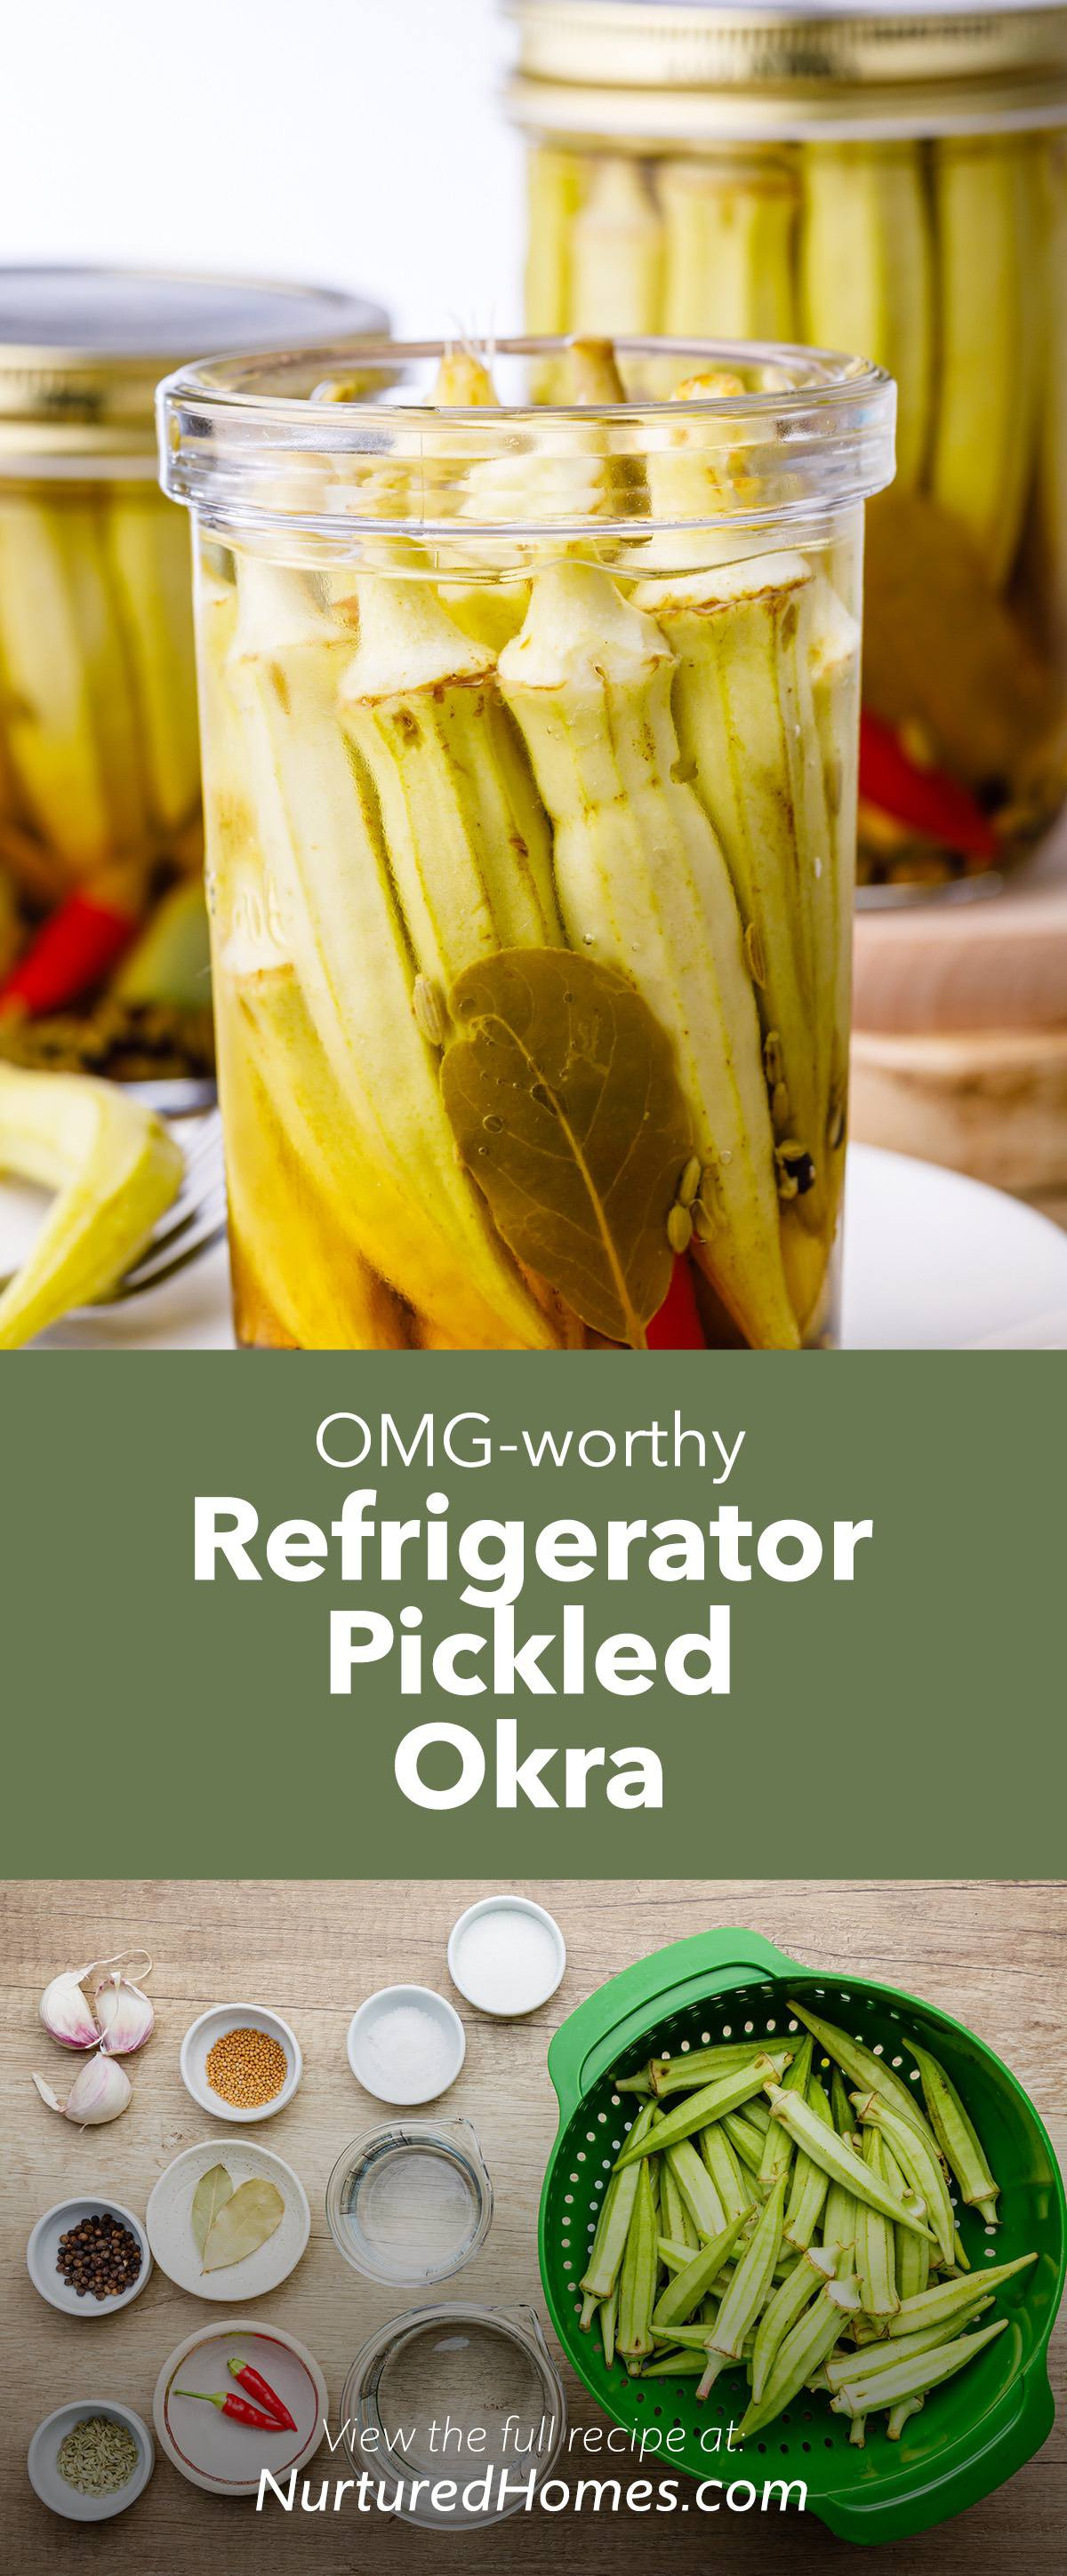 Refrigerator Pickled Okra Recipe That Turns Okra Haters Into Okra Lovers